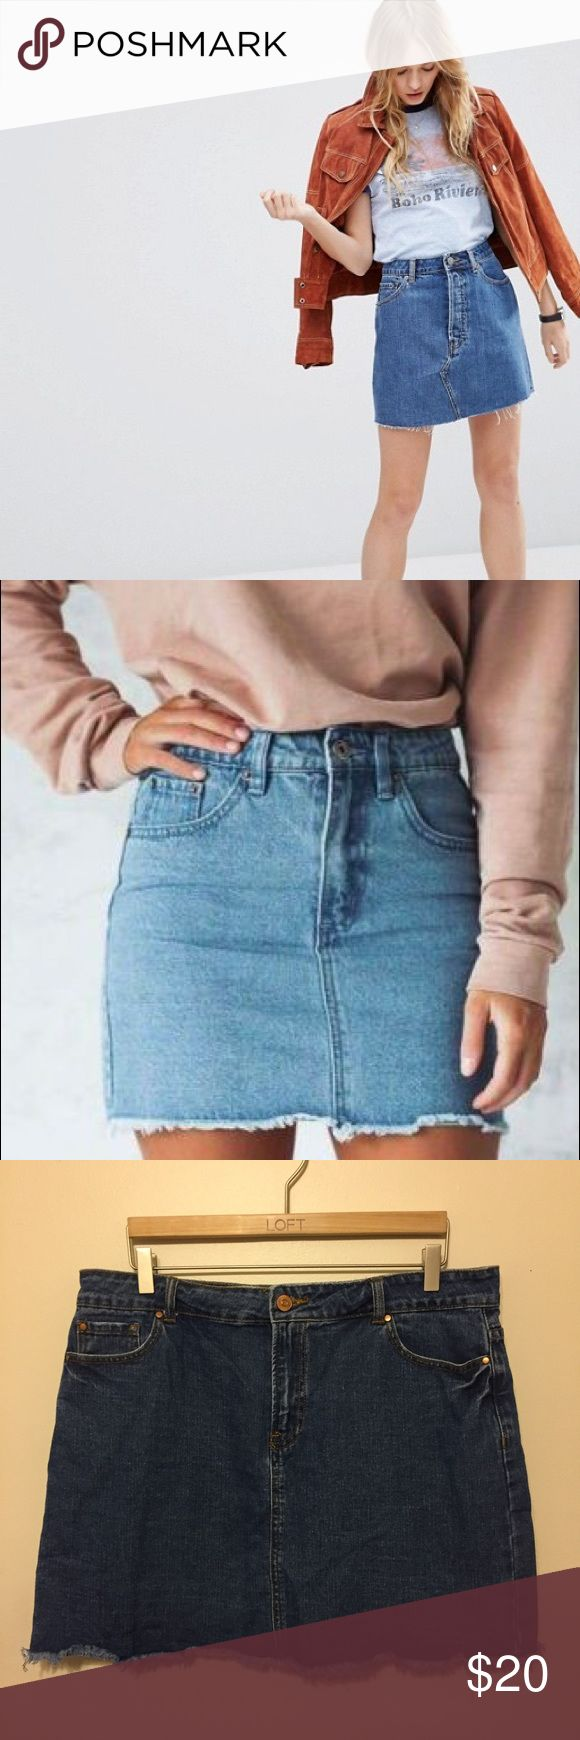 Denim Mini Skirt Mid wash denim. EUC. TTS. Perfect wardrobe essential for all seasons. Model pictures are similar styles.   ✨ Ask any questions! 💕 Reasonable offers welcome 📦 Bundle 2+ items for 15% discount Forever 21 Skirts